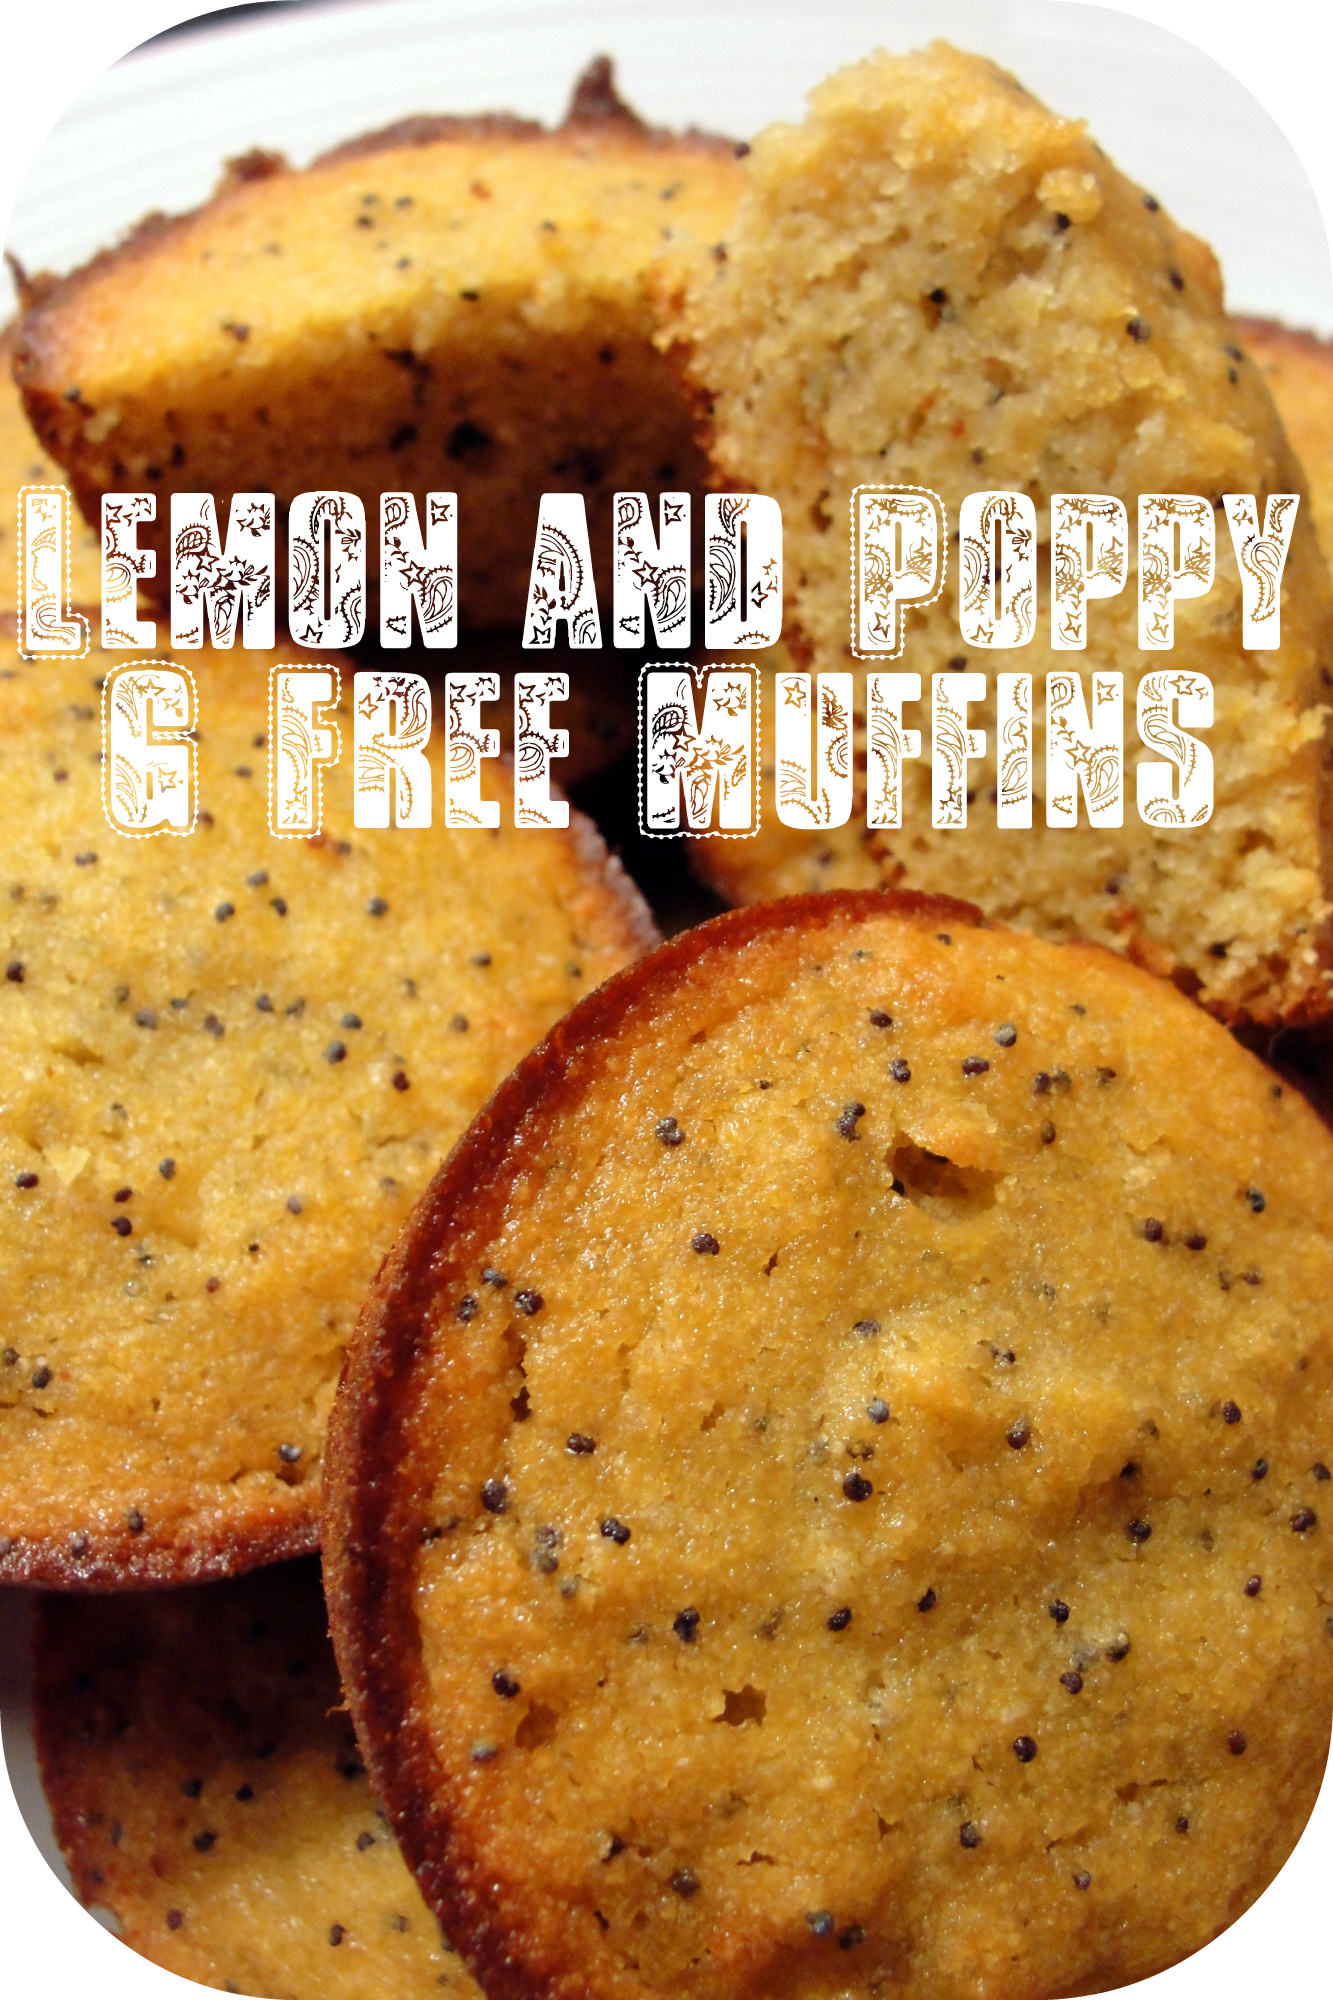 Gluten And Dairy Free Beet And Poppy Seed Muffins Recipes — Dishmaps